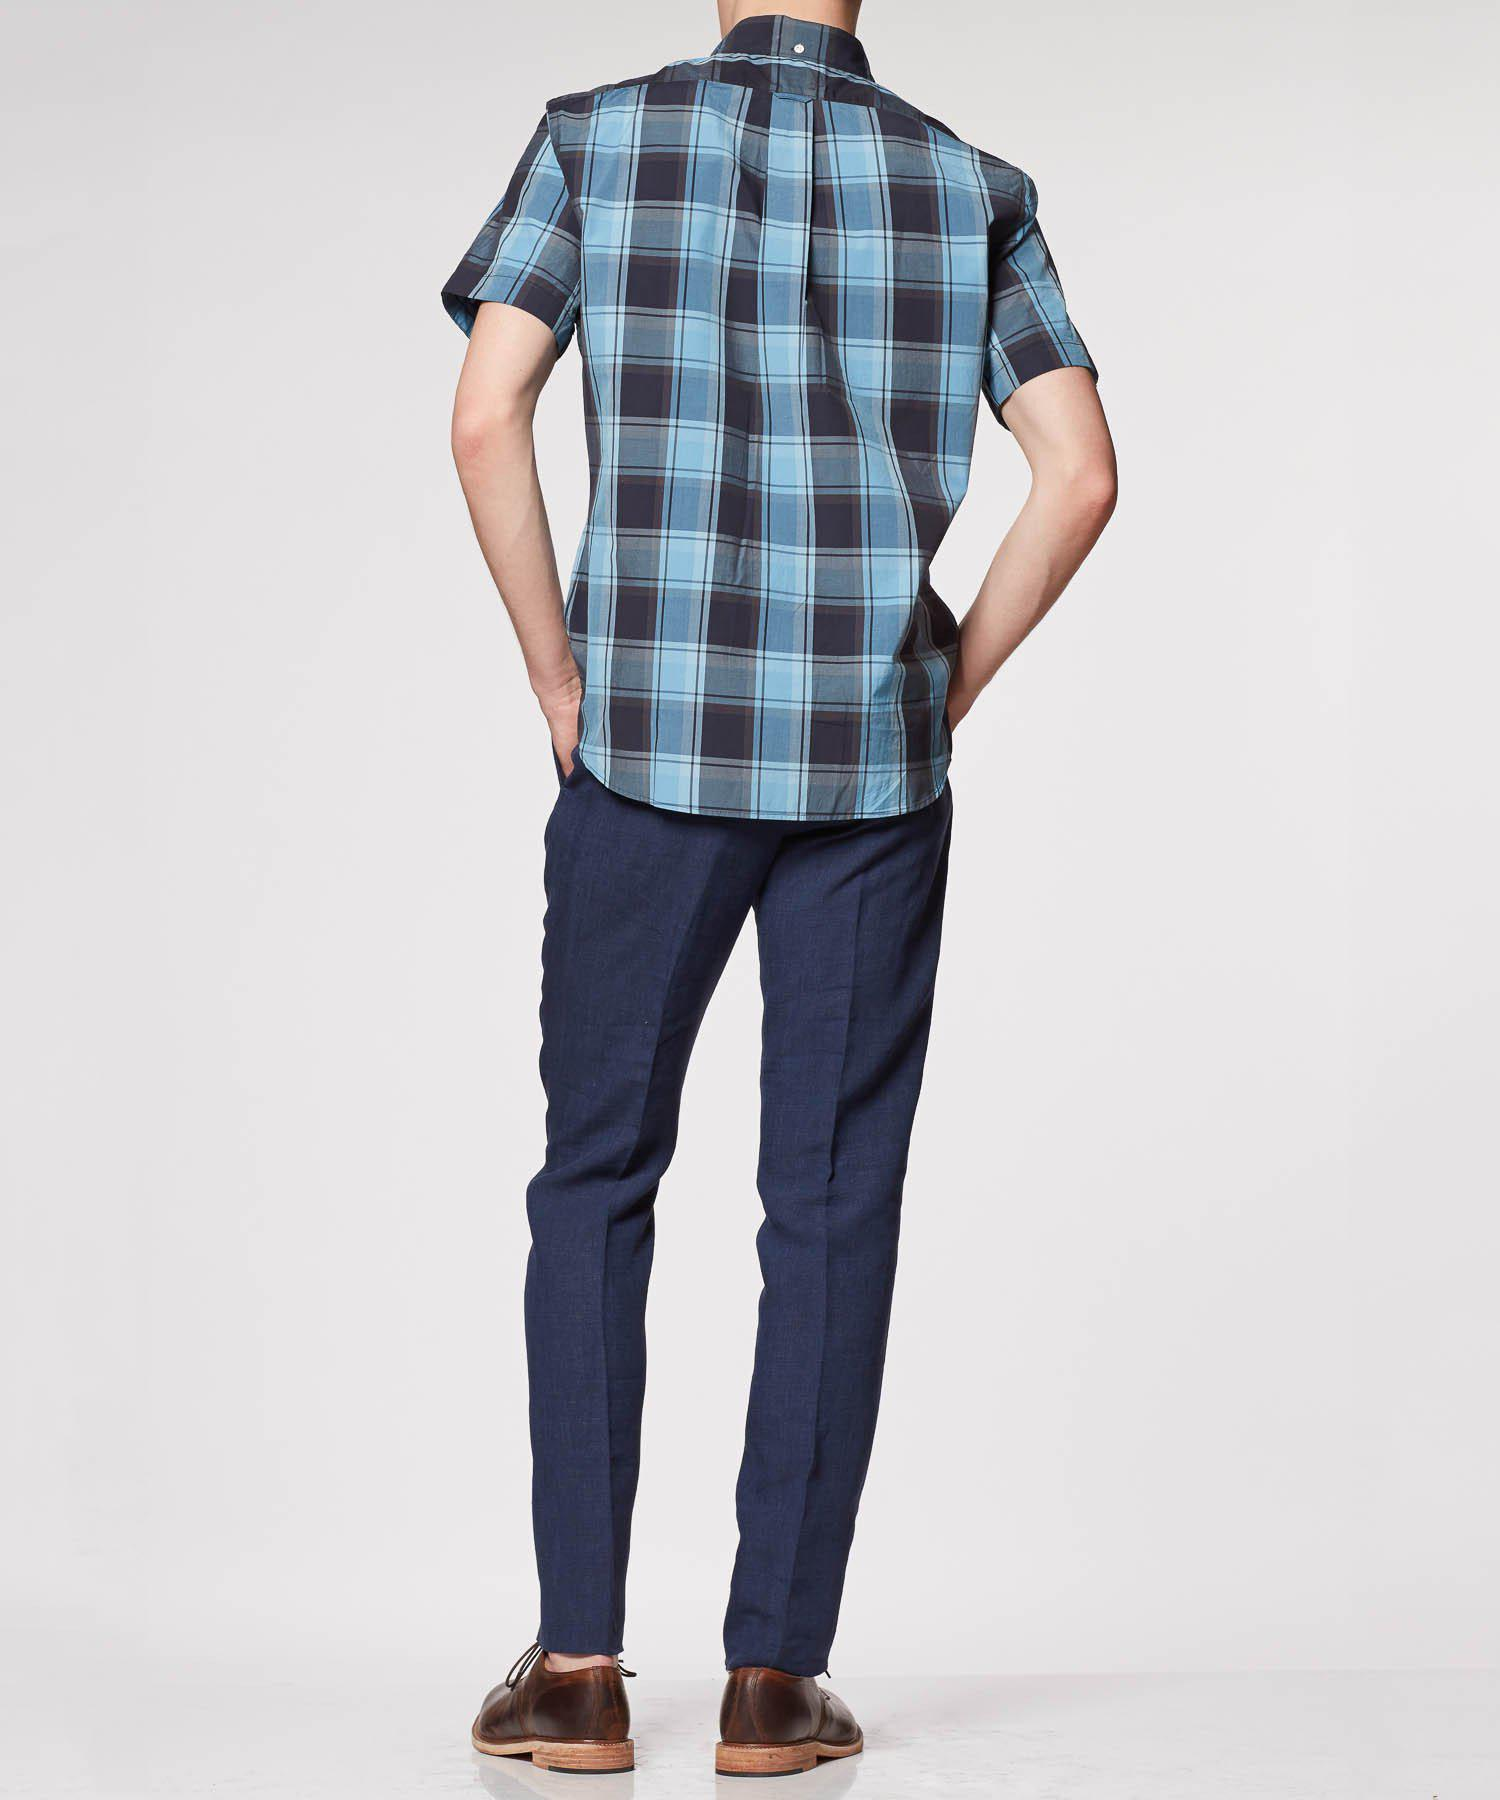 Lyst Todd Snyder Blue Plaid Short Sleeve Shirt In Blue